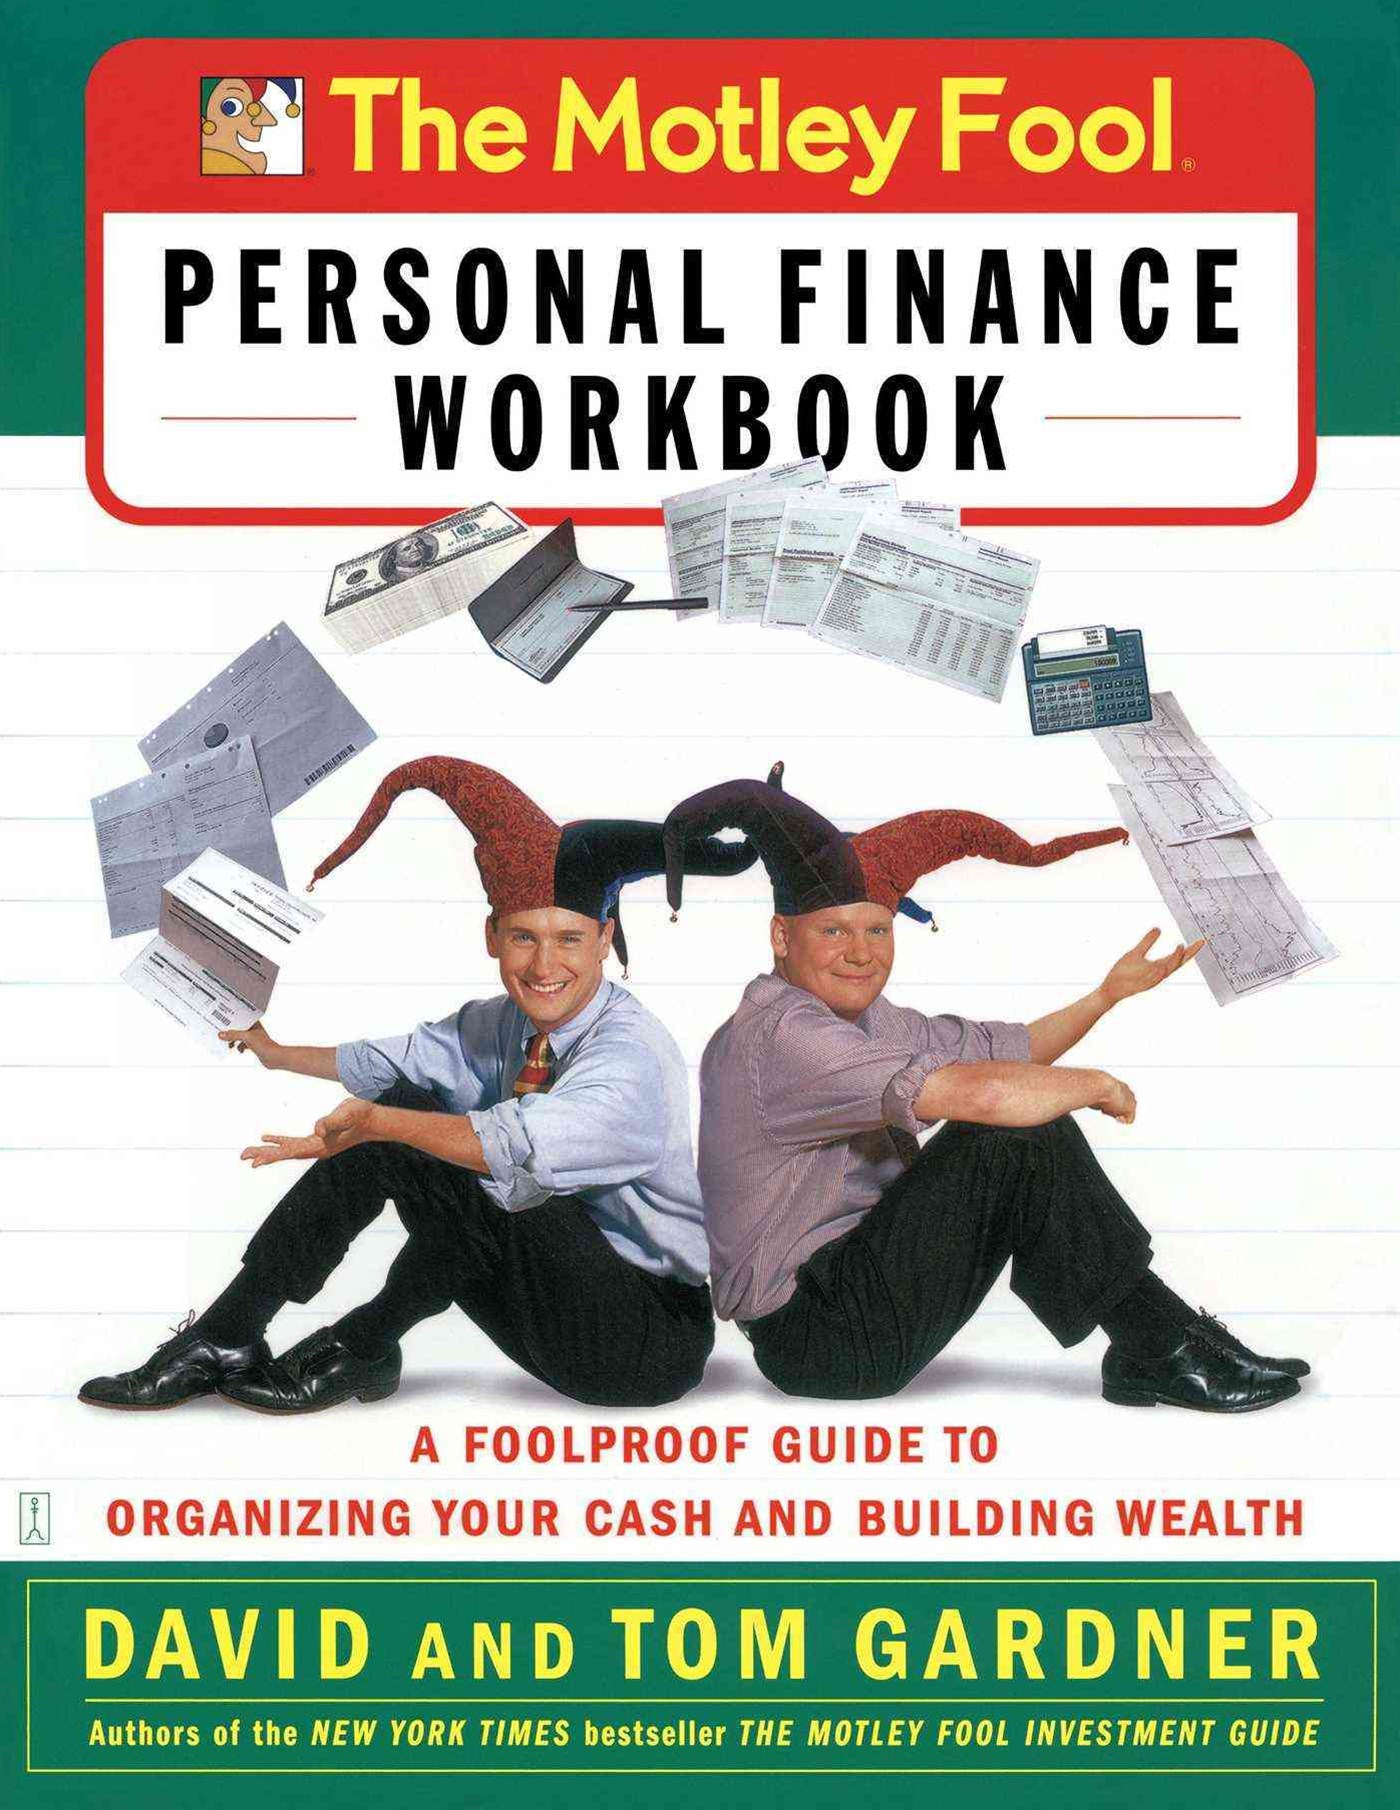 The Motley Fool Personal Finance Workbook